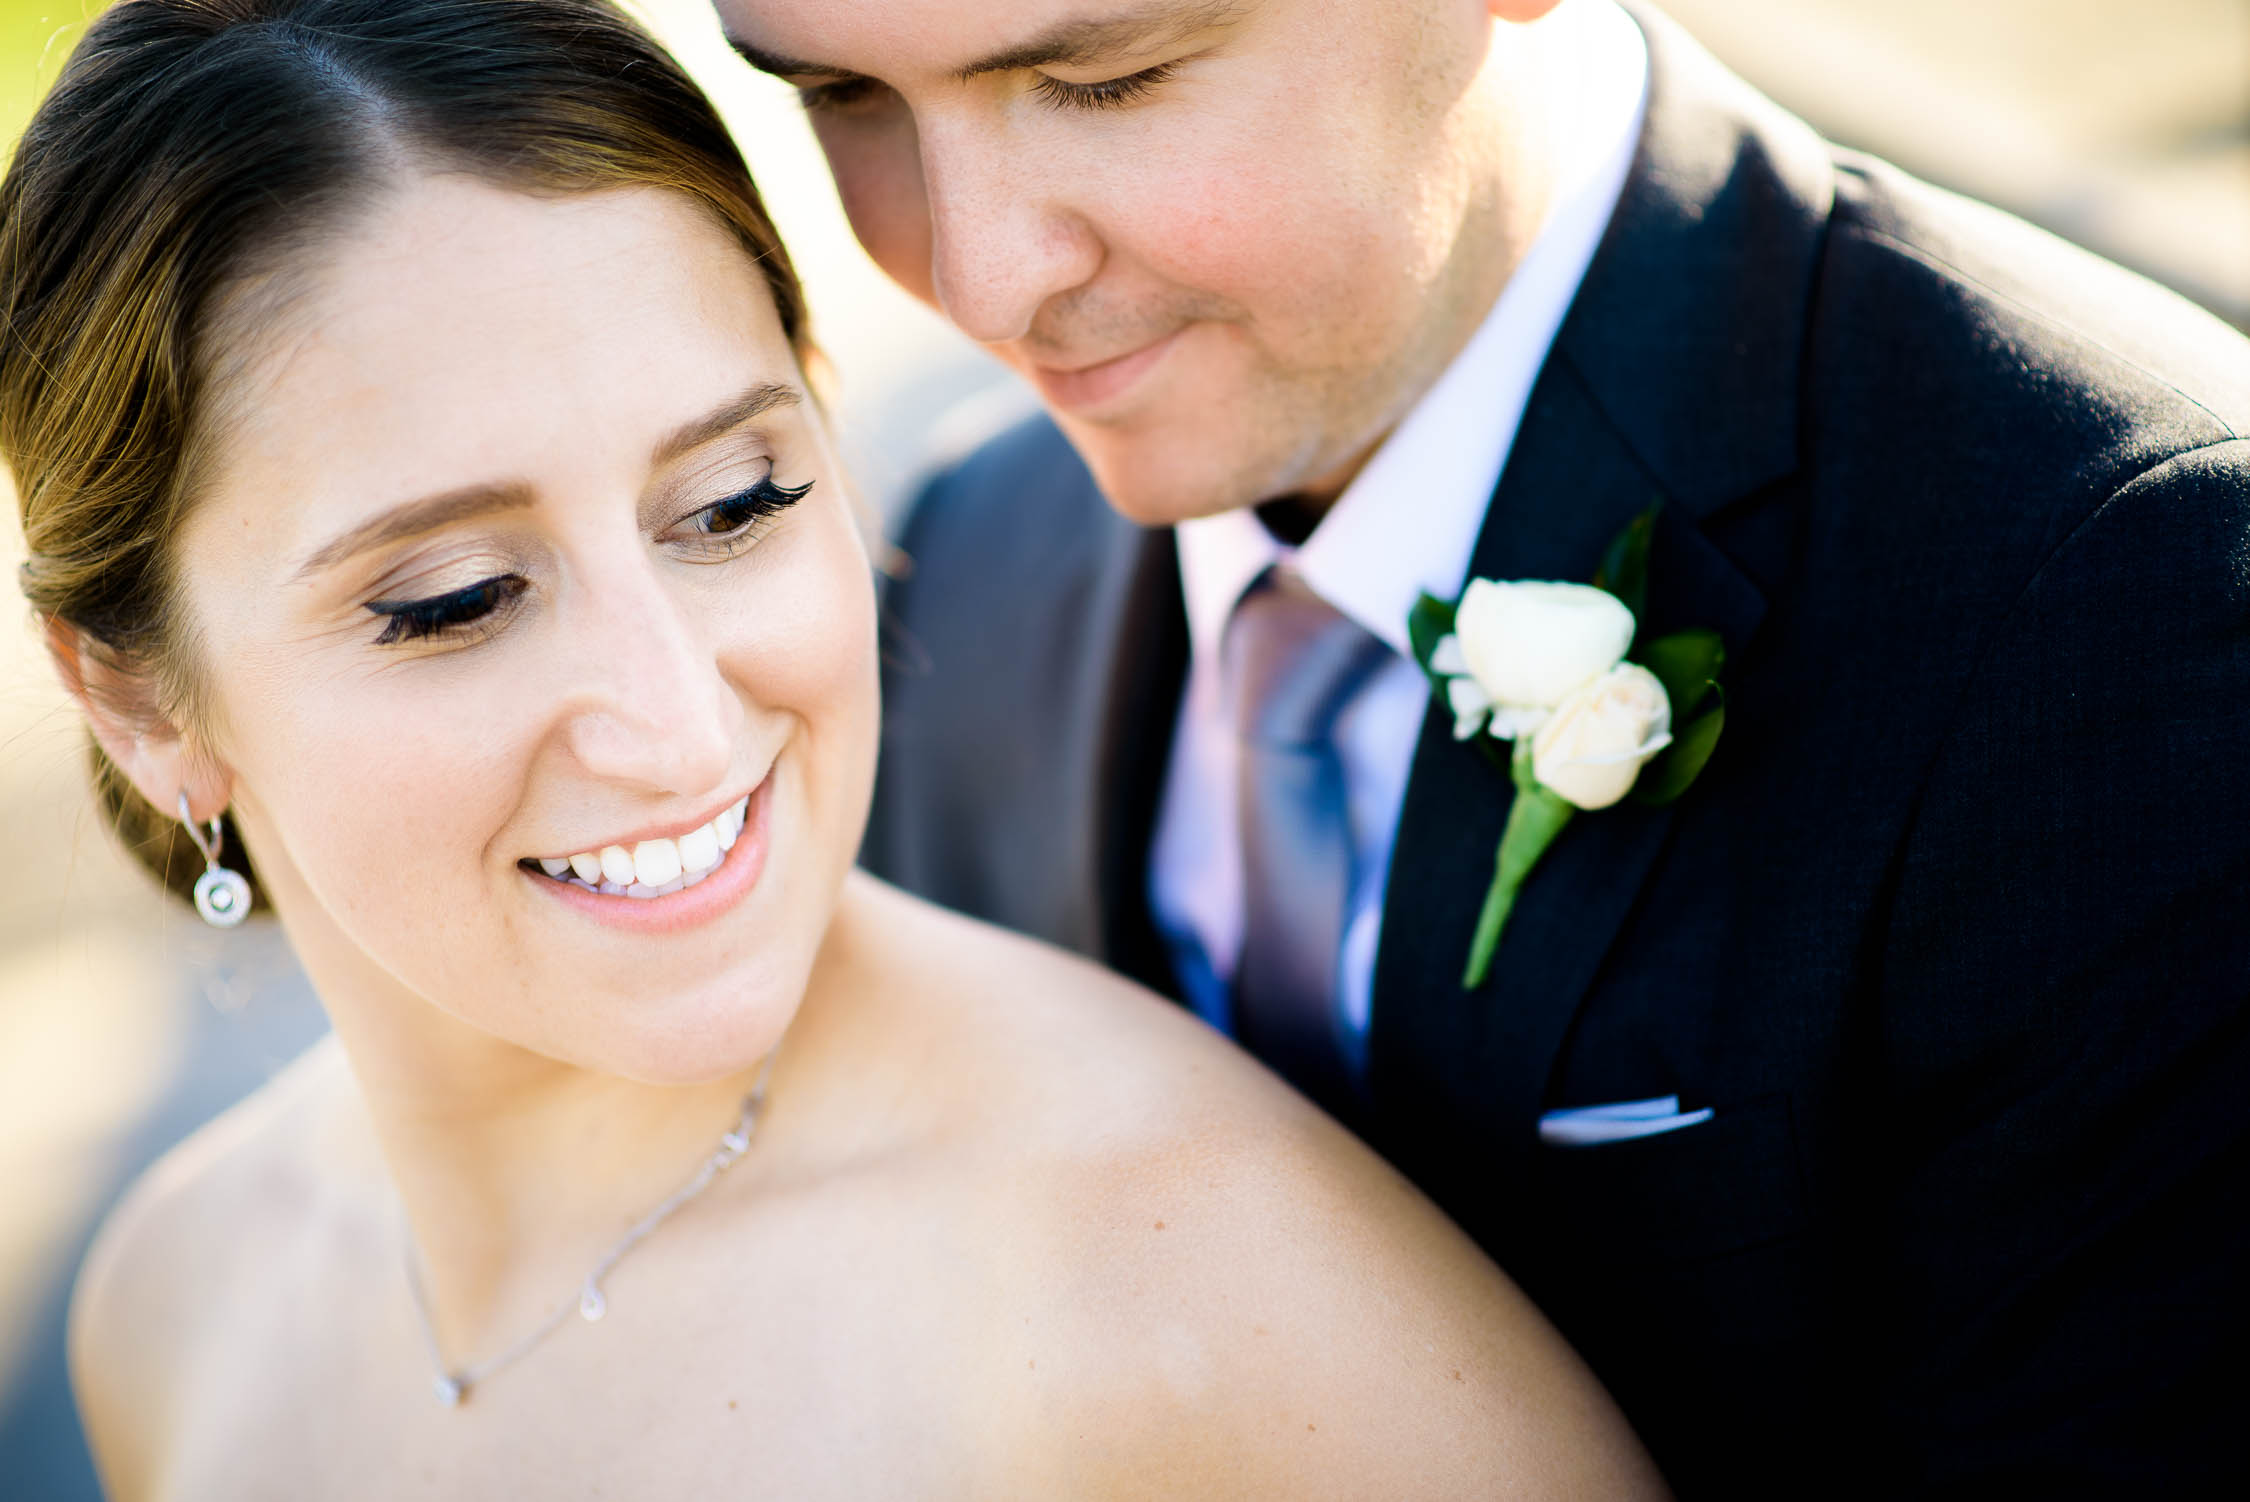 Wedding day portrait at Independence Grove in Libertyville.